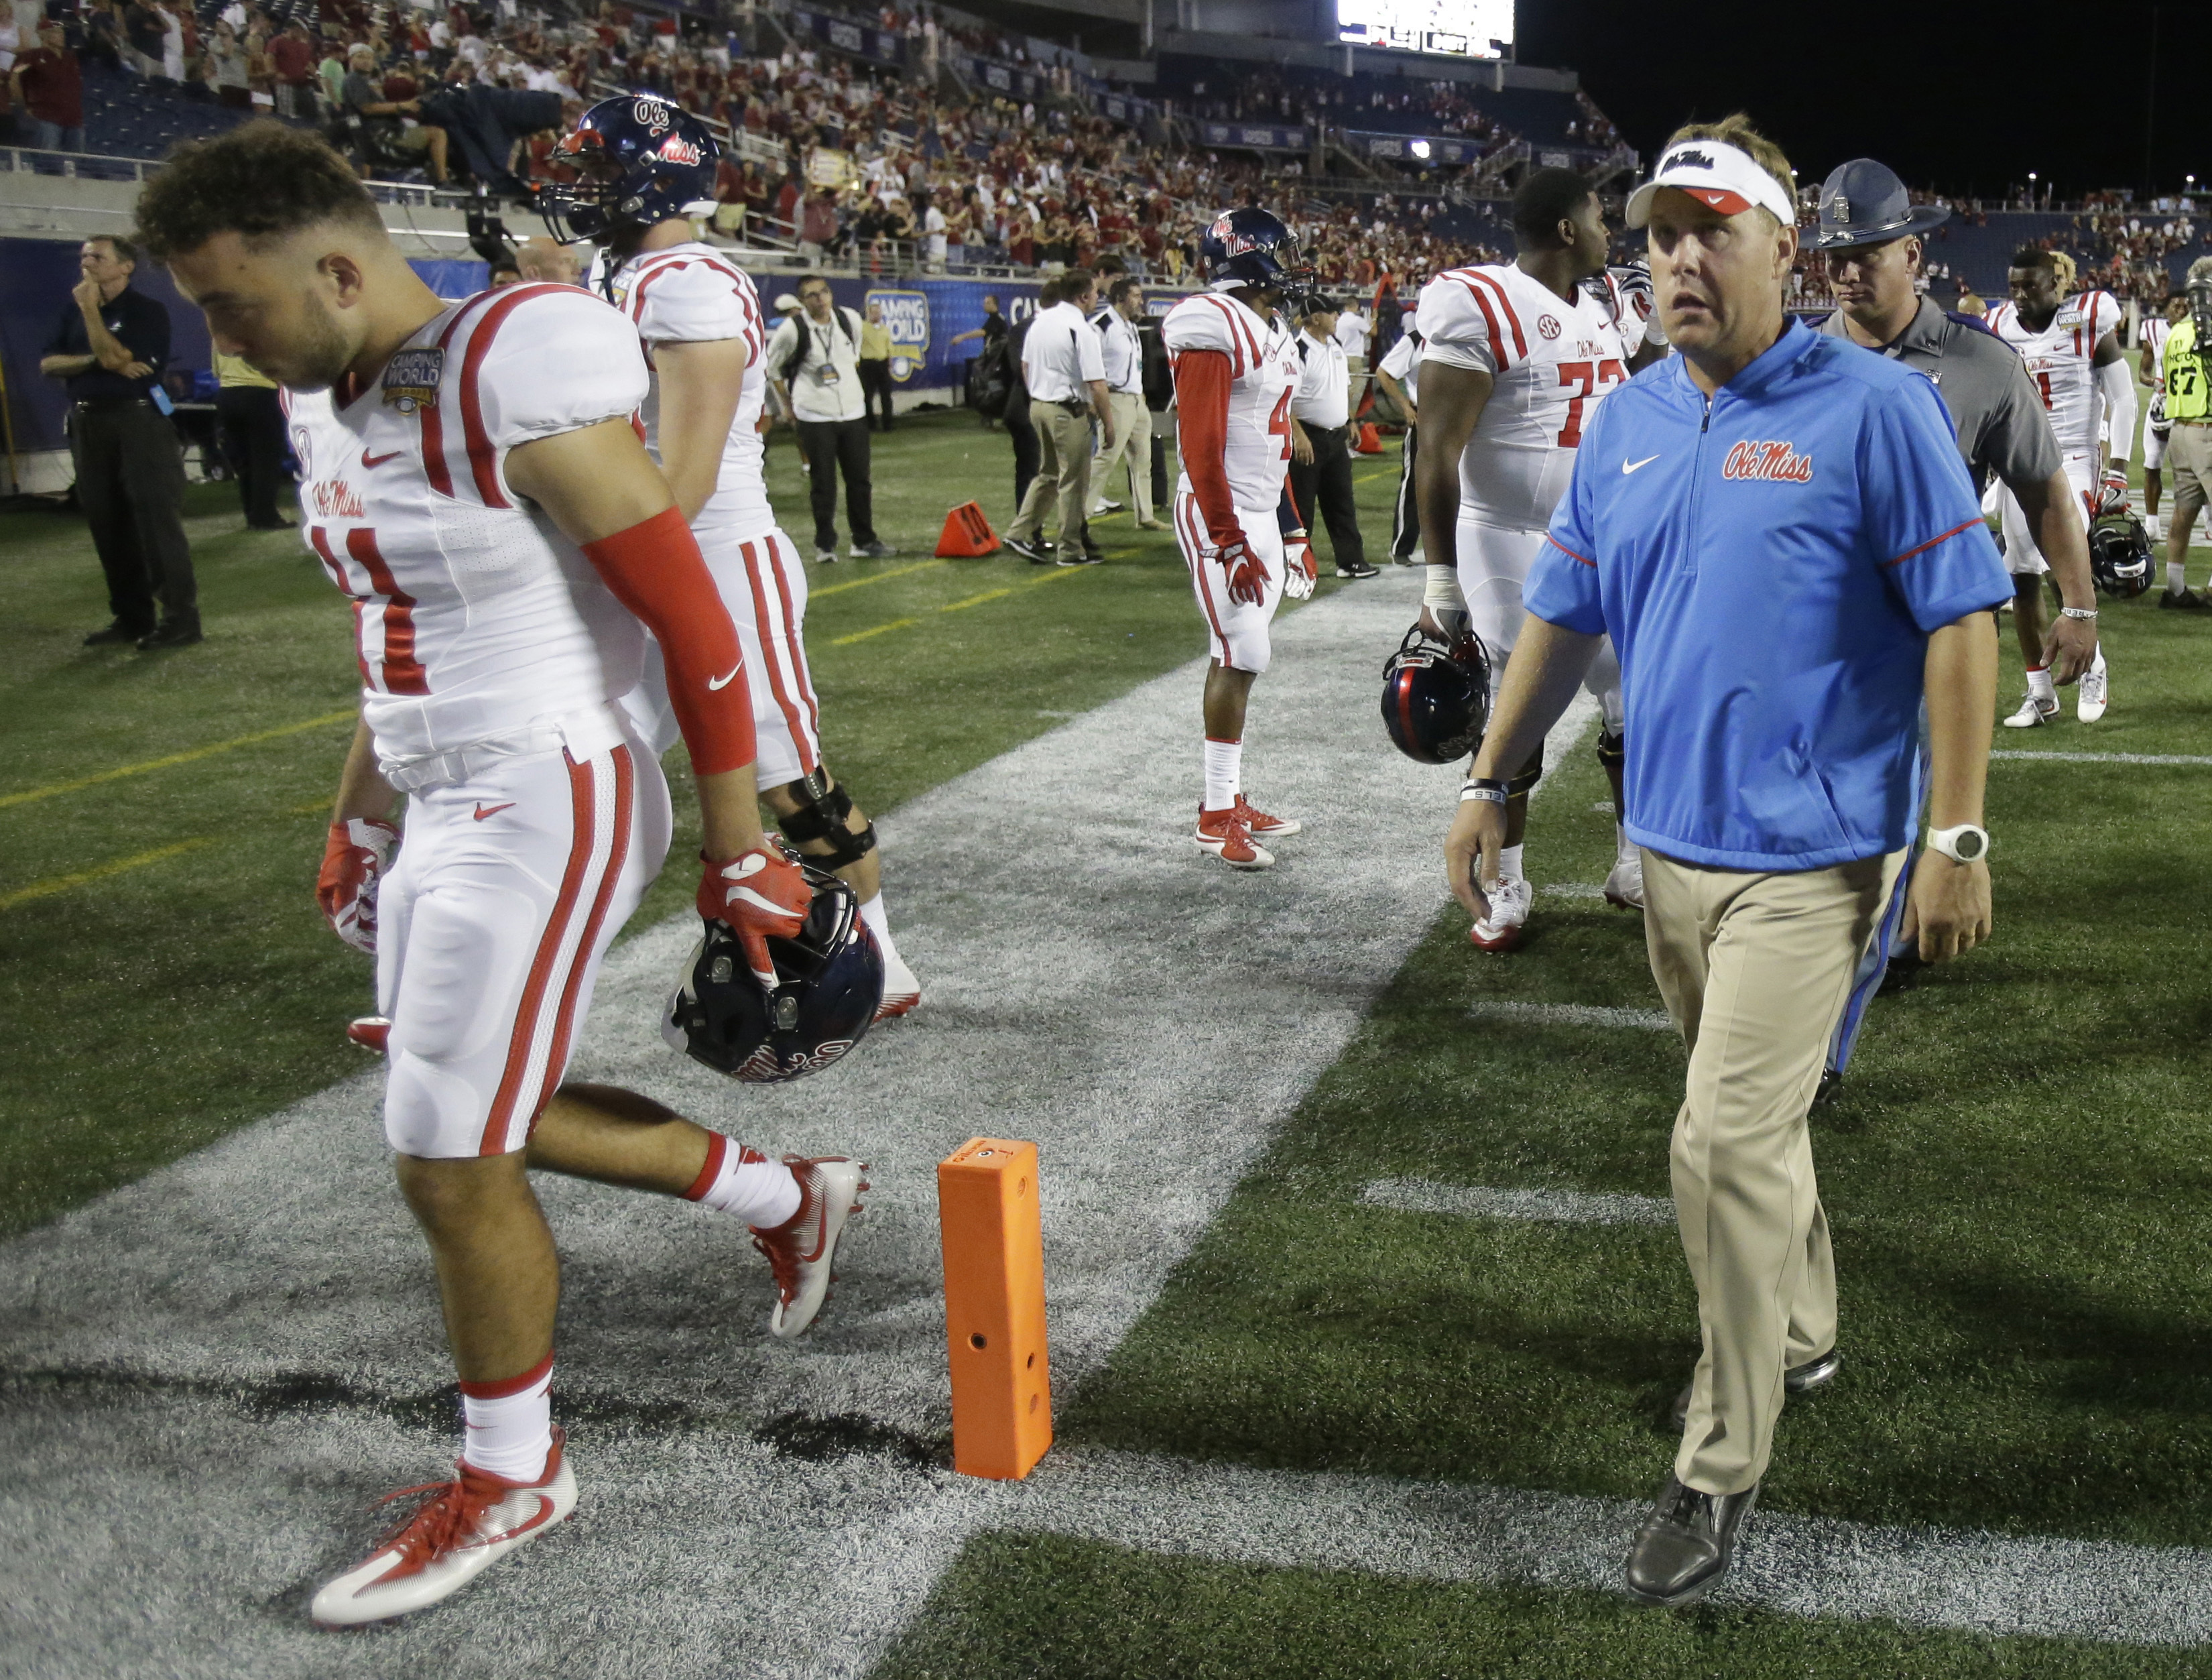 FILE - In this Sept. 6, 2016, file photo, Mississippi head coach Hugh Freeze, right, leaves the field with players after losing to Florida State 45-34 in an NCAA college football game, in Orlando, Fla. Oklahoma and Mississippi entered this season with leg